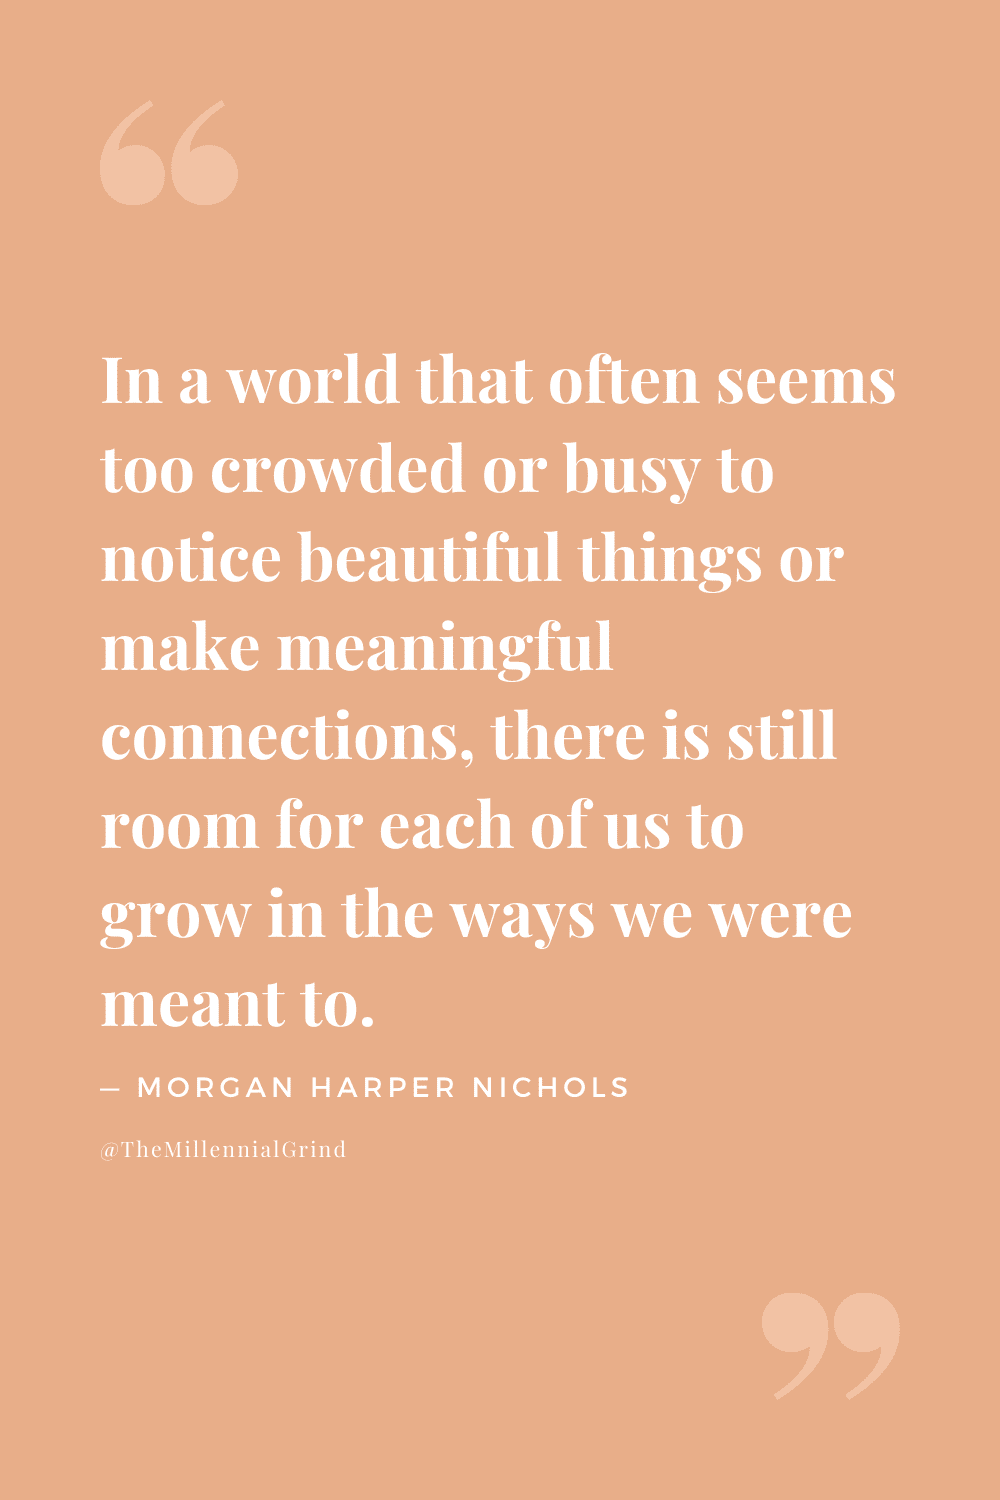 Quotes From All Along You Were Blooming by Morgan Harper Nichols